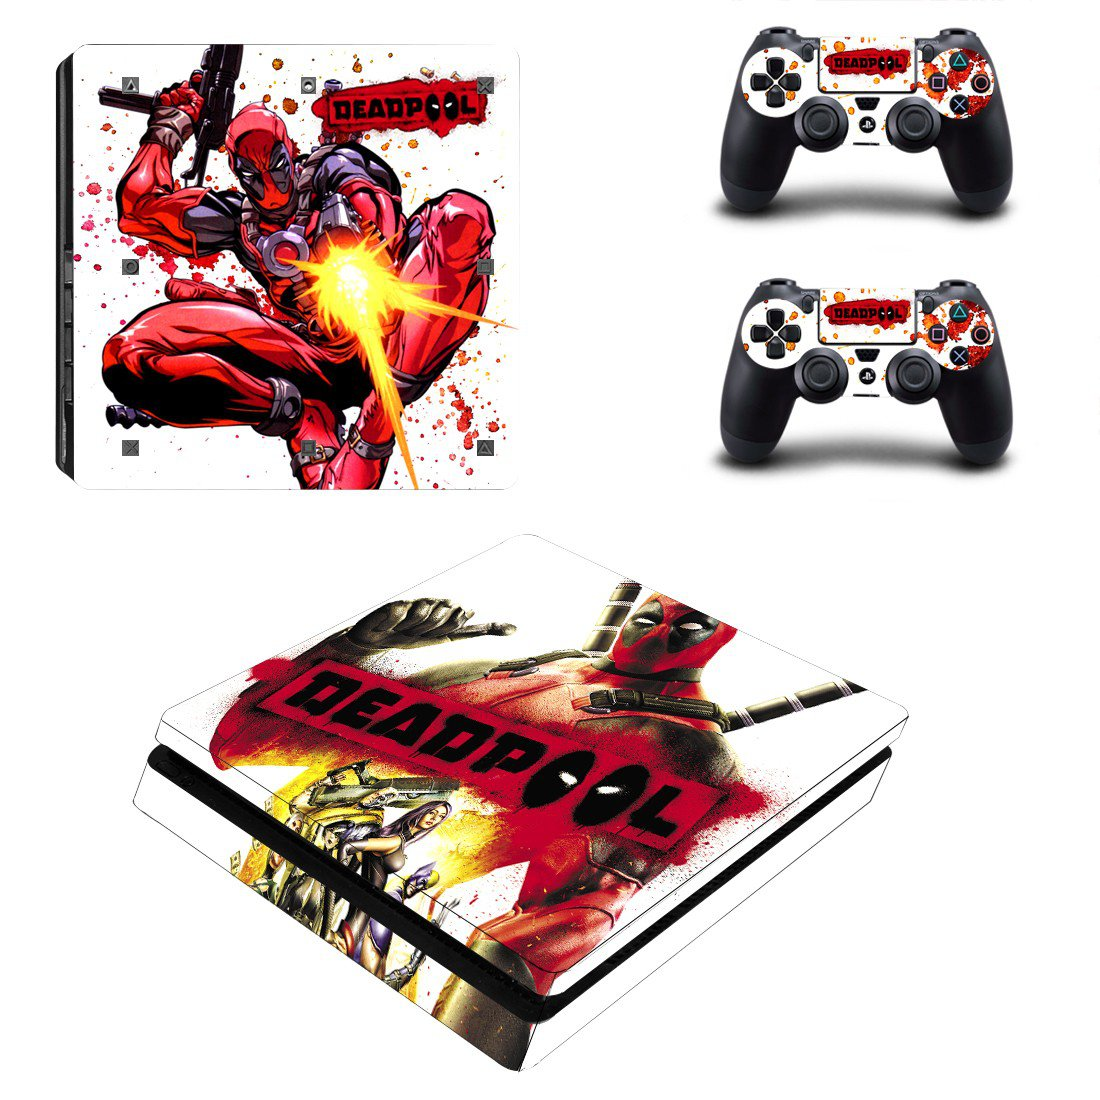 Deadpool Play Station 4 slim skin decal for console and 2 controllers